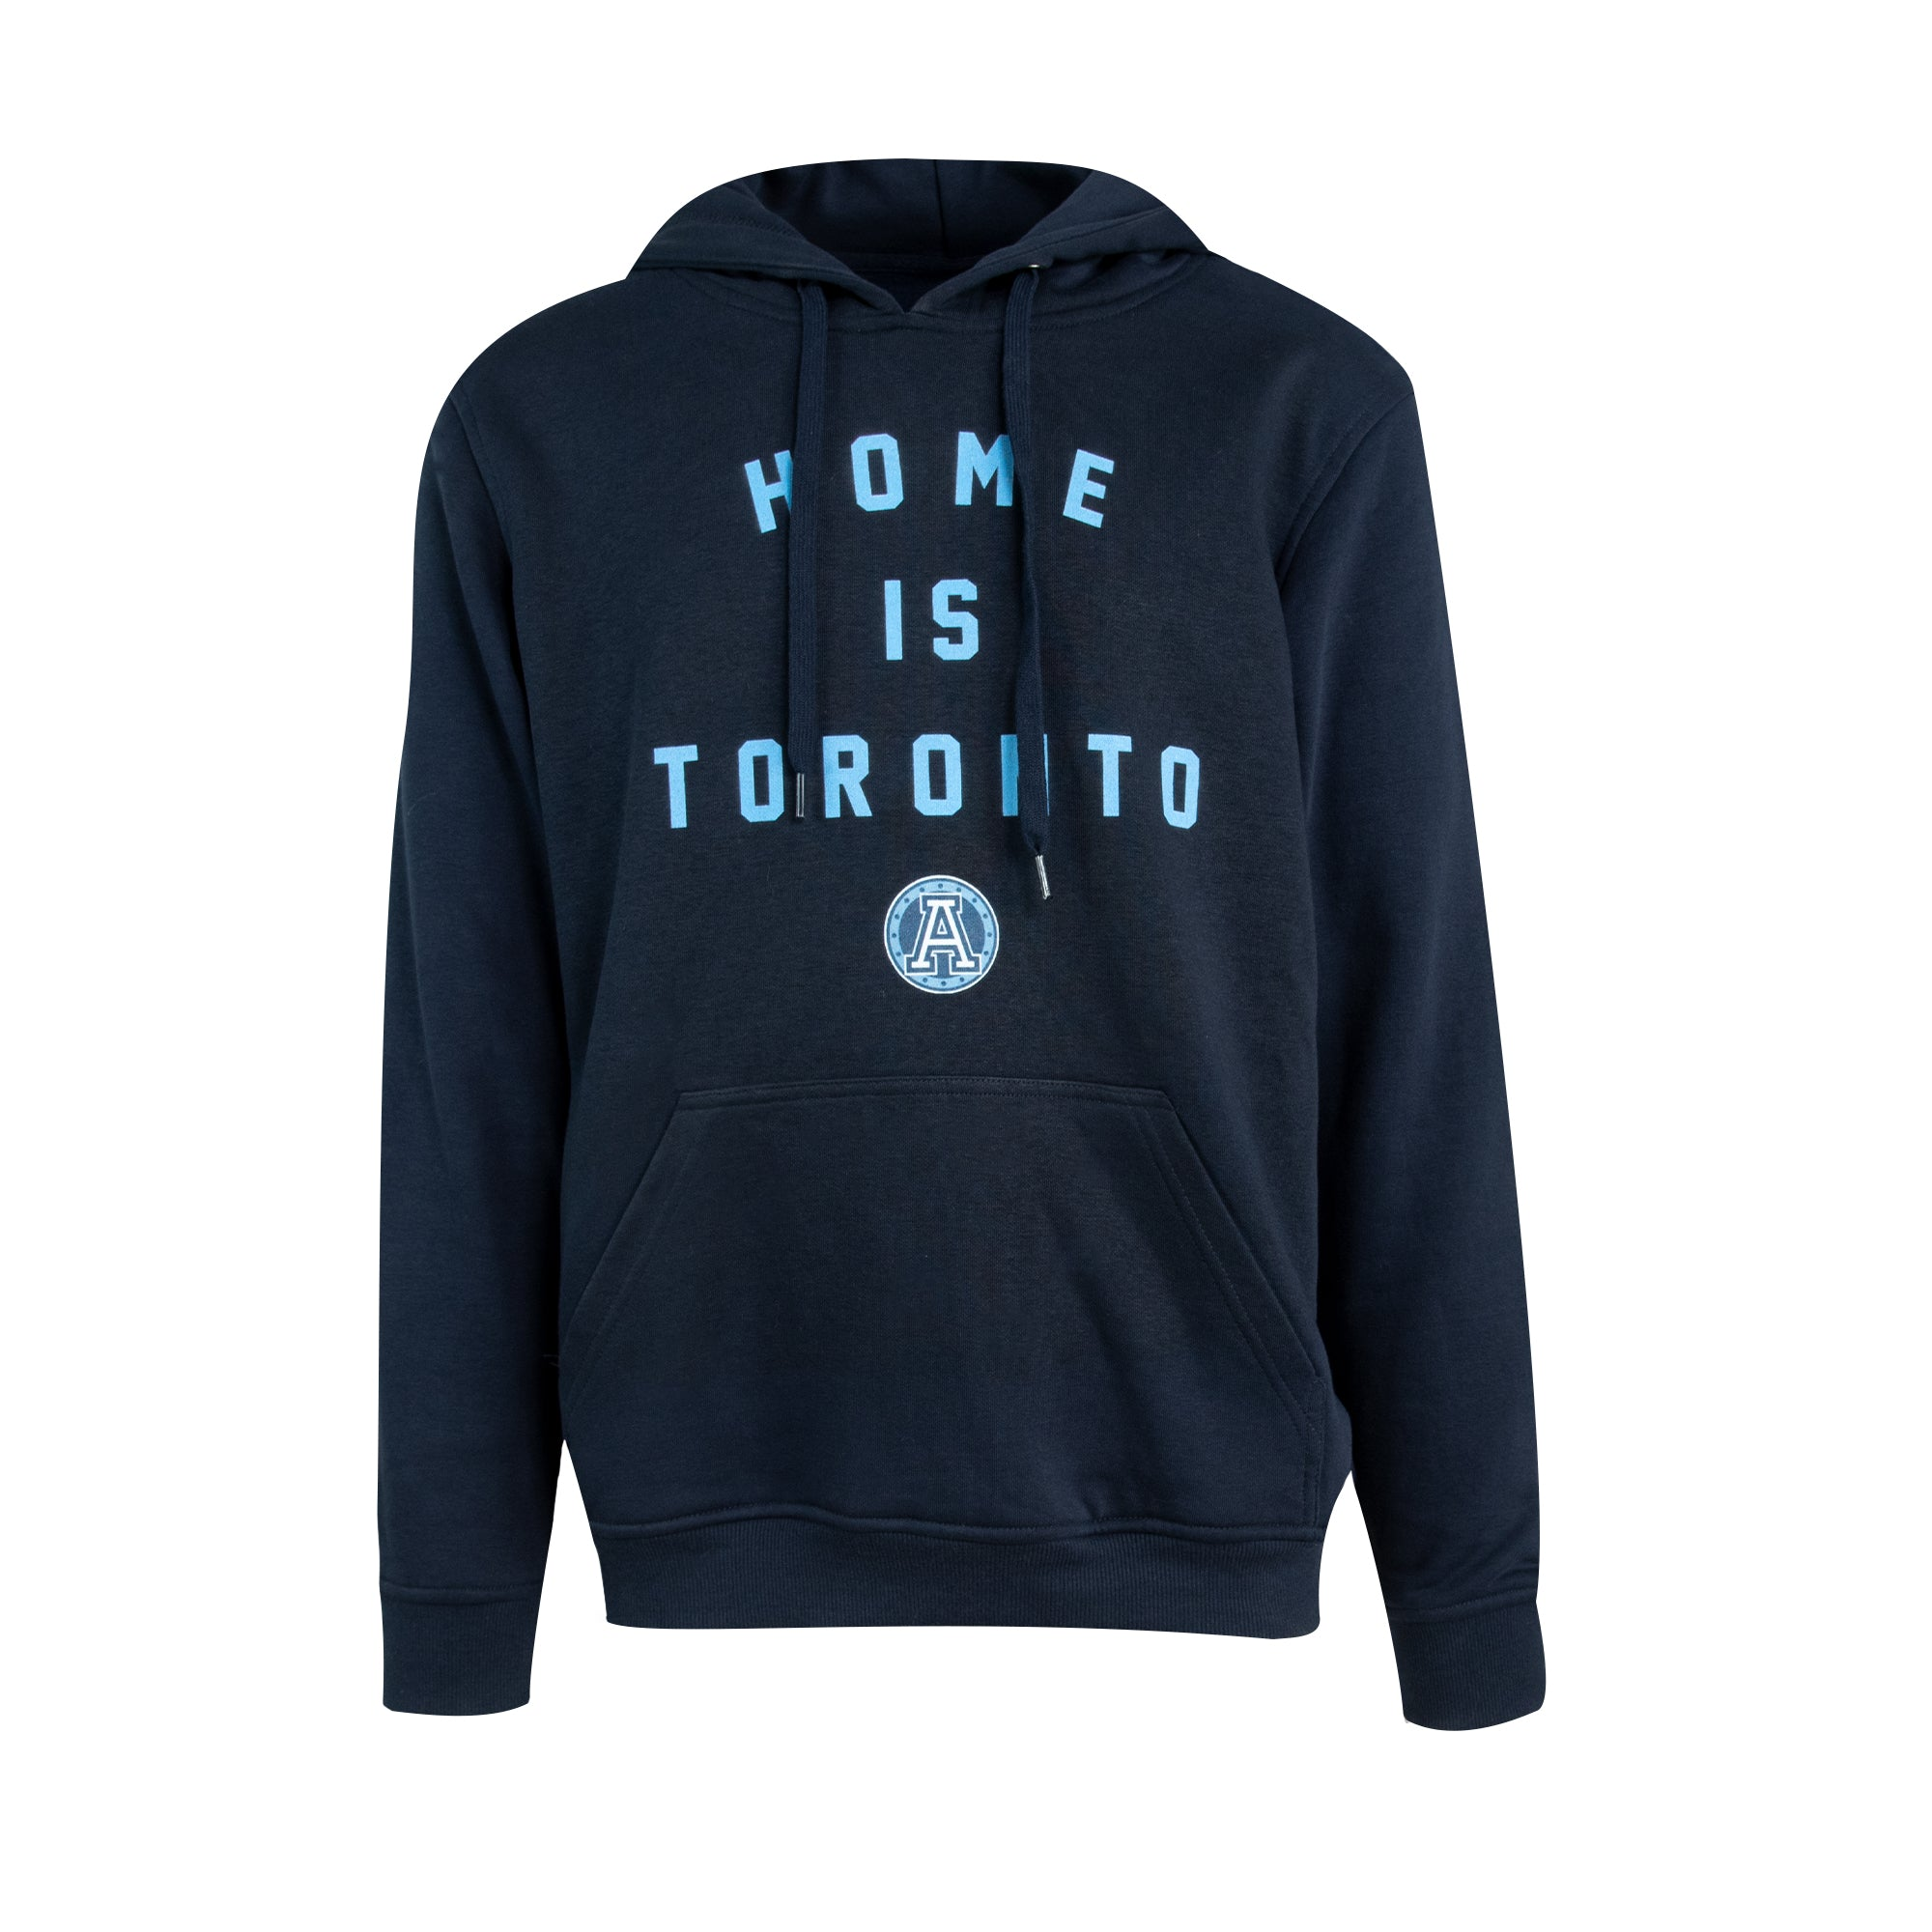 Argos Peace Collective Men's Home is Toronto Hoody